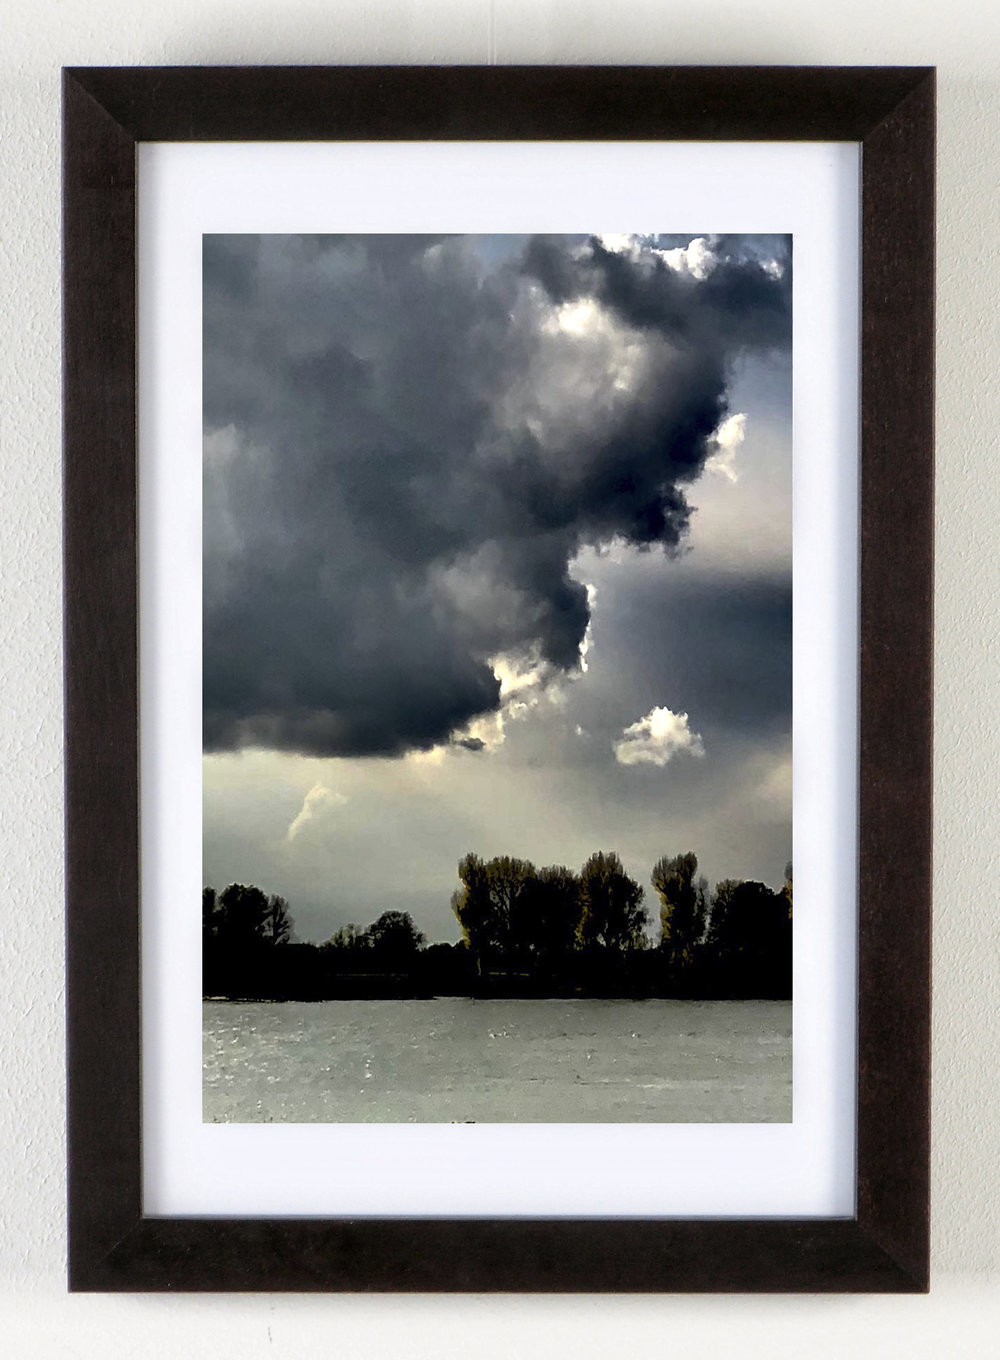 Storm  Year: 2017  Photoprint under glass  Size: 30x45 cm  Outside measurement: 34x49 cm  Frame: Alderwood Brown  Paper: Fuji Crystal Archive Glossy  Acrylic Glass 2 mm Glossy  Price per framed image: € 379  Please contact us for frame variety.